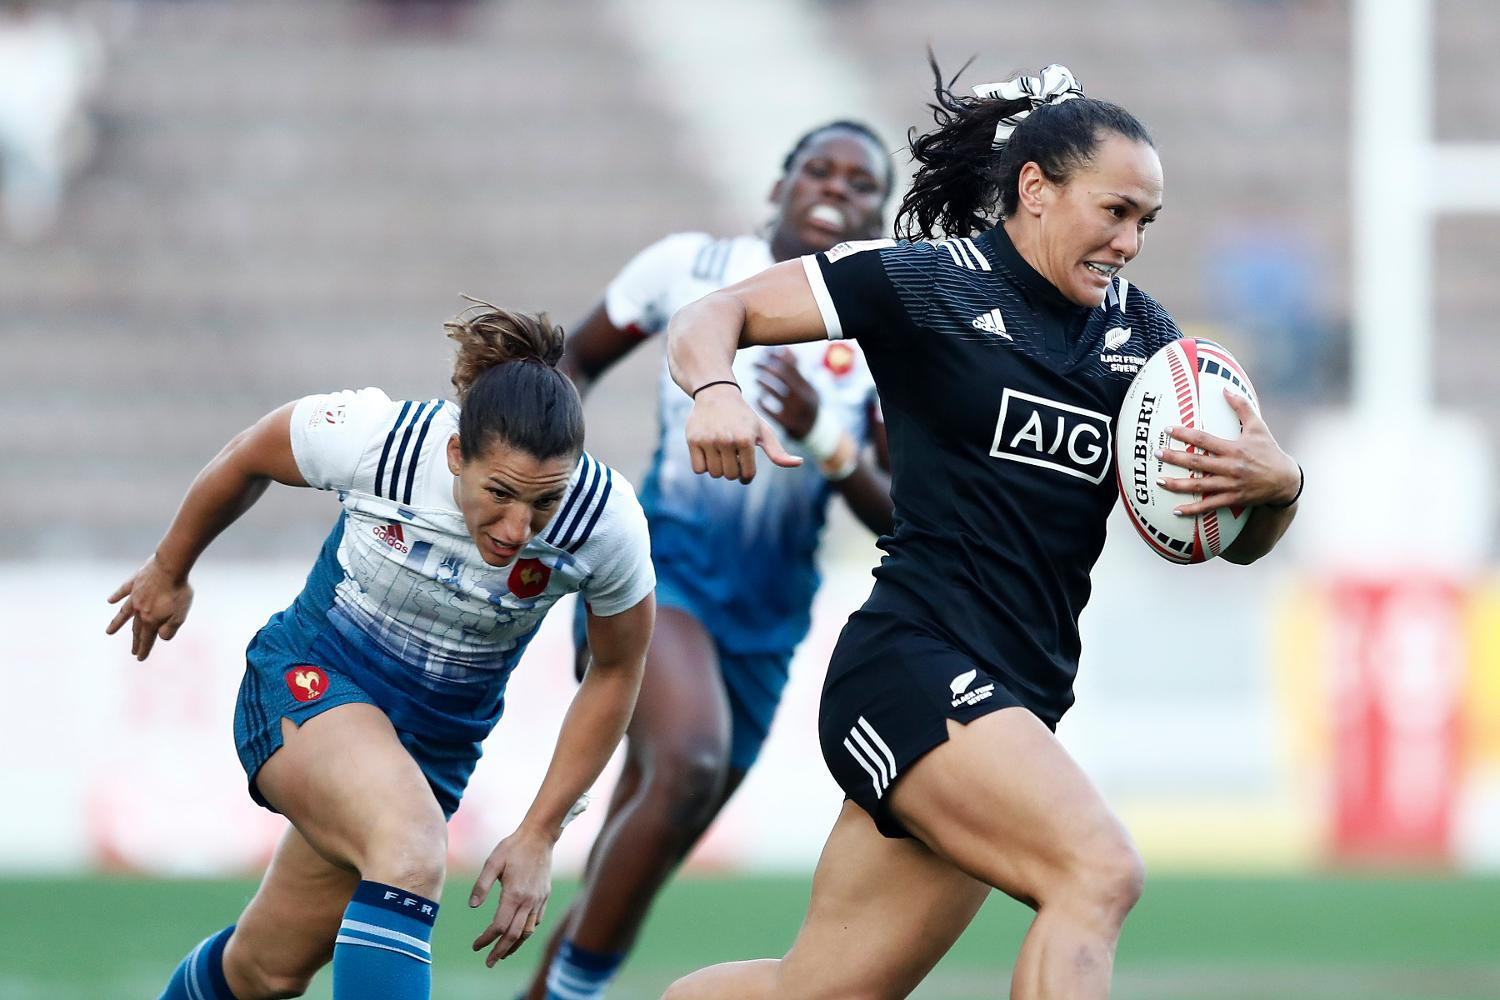 New Zealand booked their quarter-final place with ease ©World Rugby